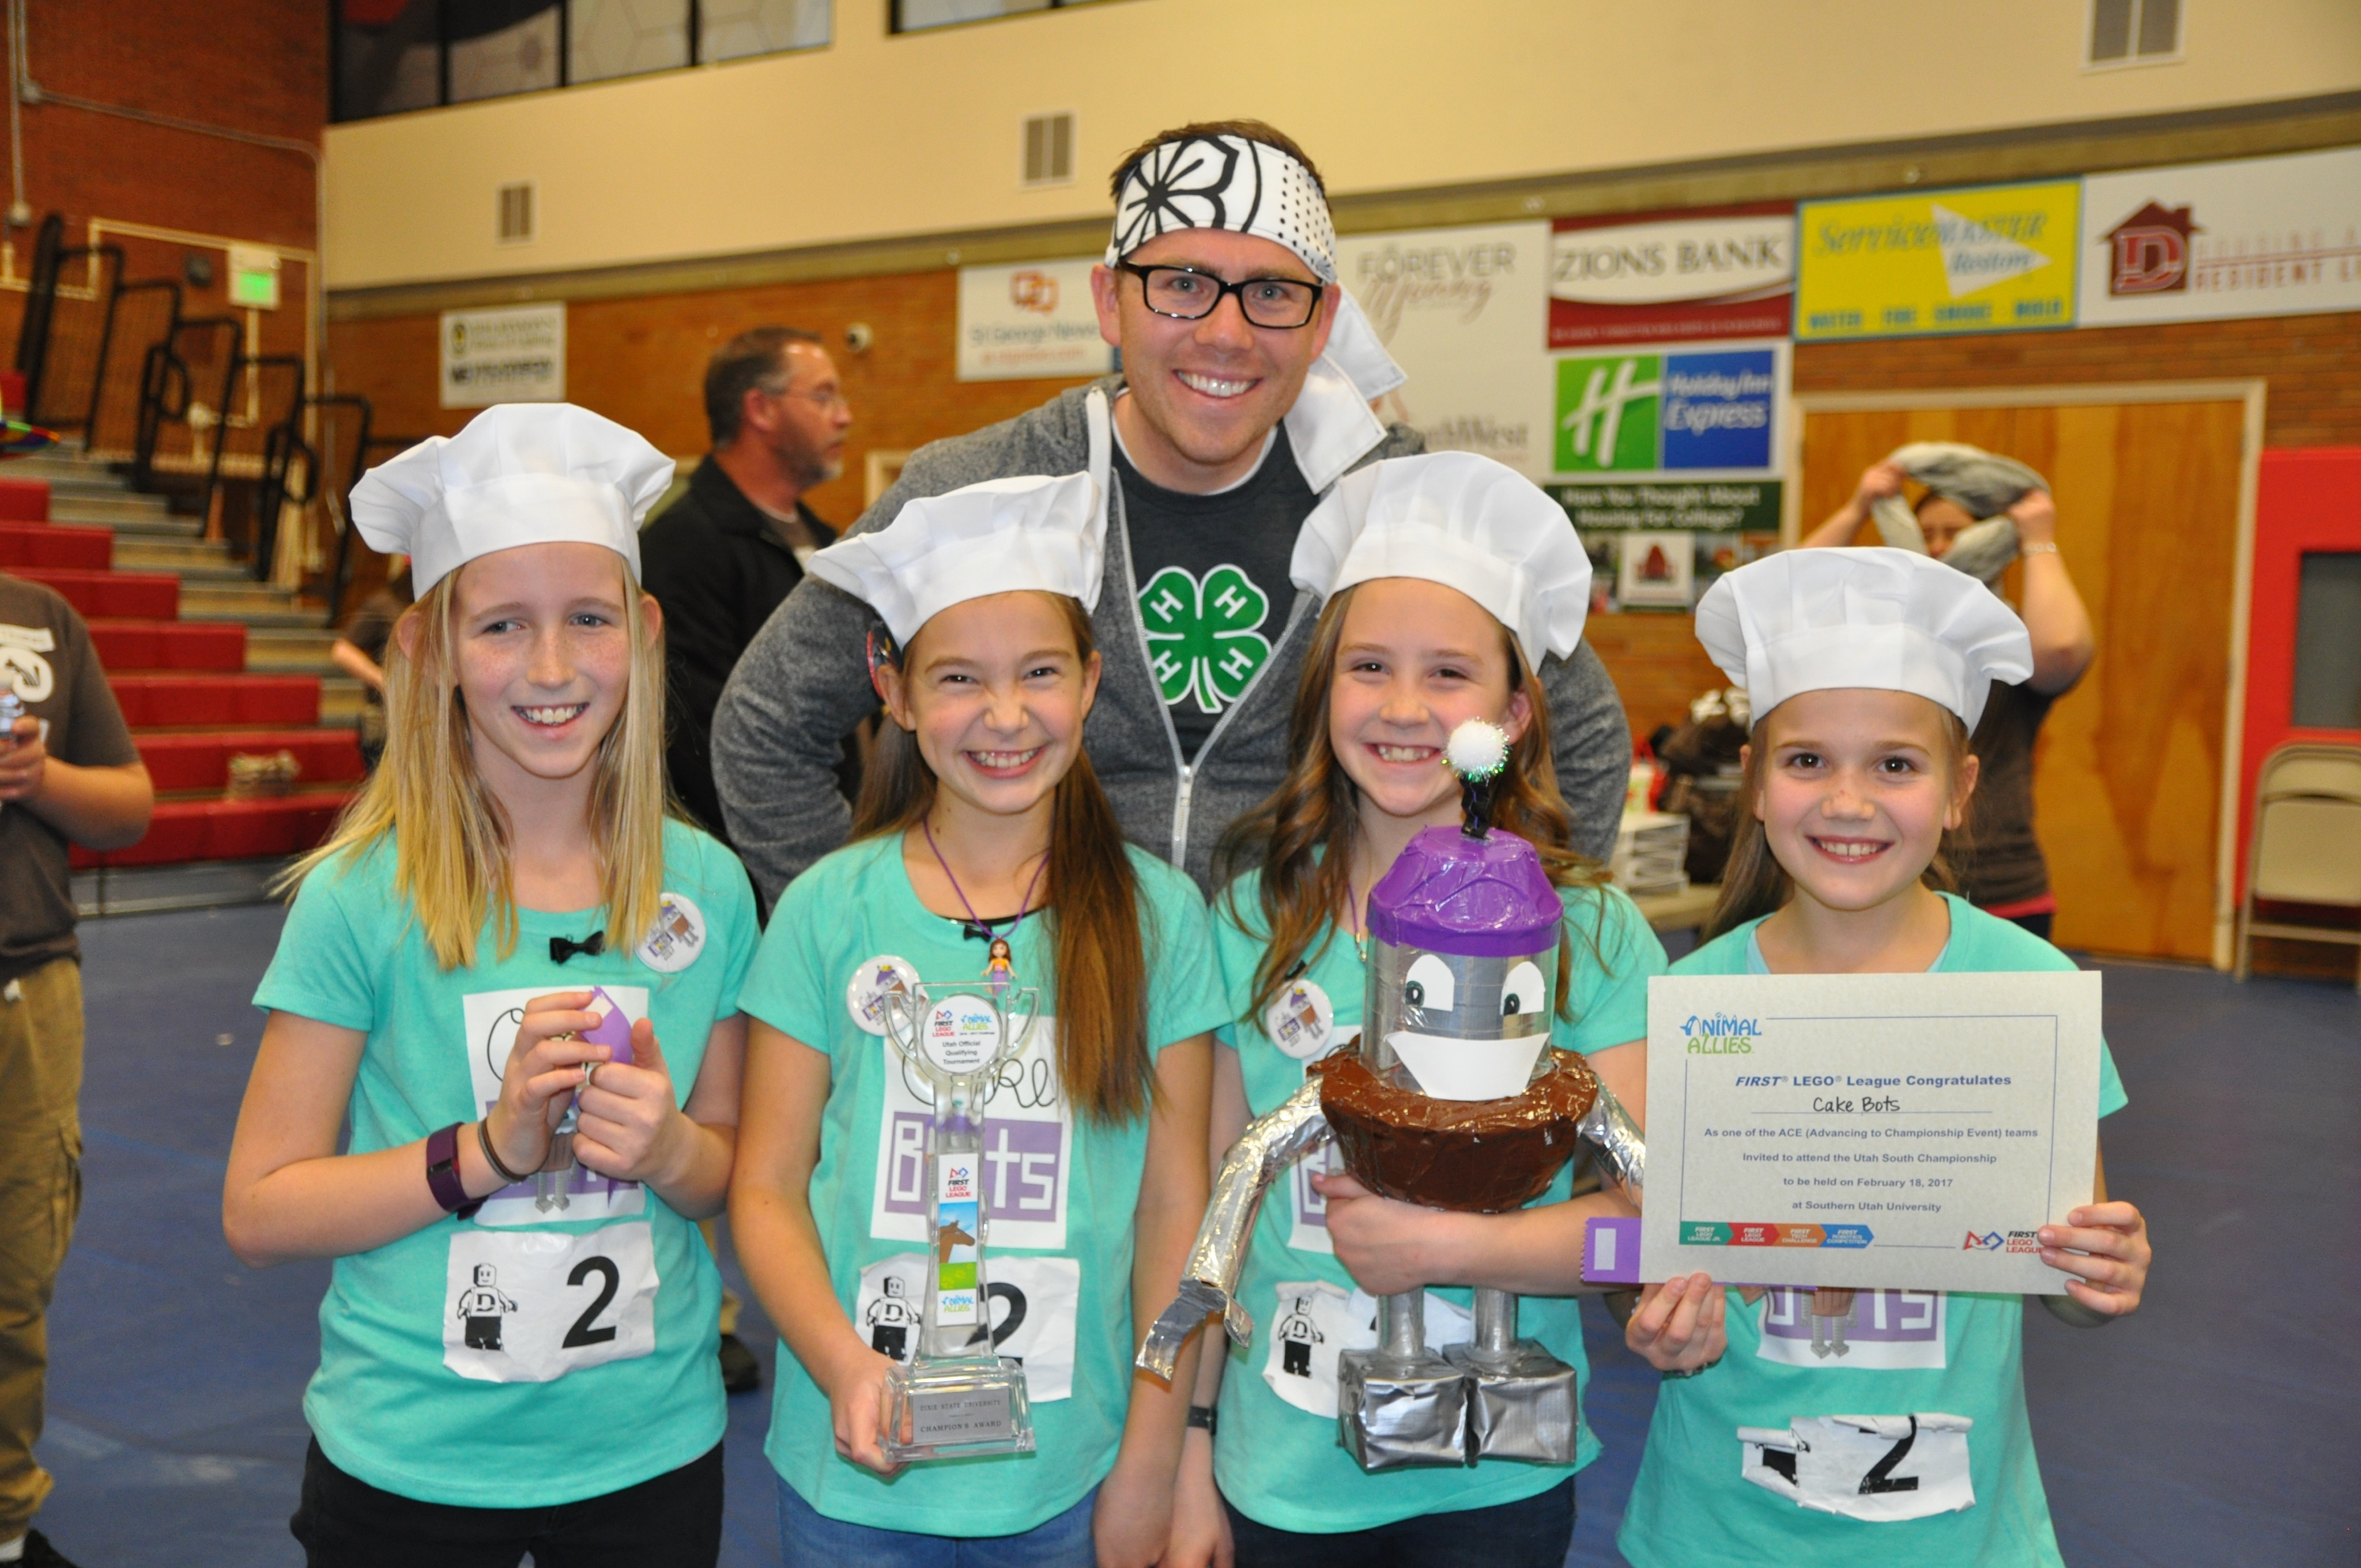 Emma Horn, Adri Baker, Kate Jones and Brinley Wilstead of the 4-H Cake Bots display their Champion's Award trophy at the First Lego League competition, Dixie State University, St. George, Utah, Jan. 7, 2017 | Photo by and courtesy of Sterling Jones, St. George News